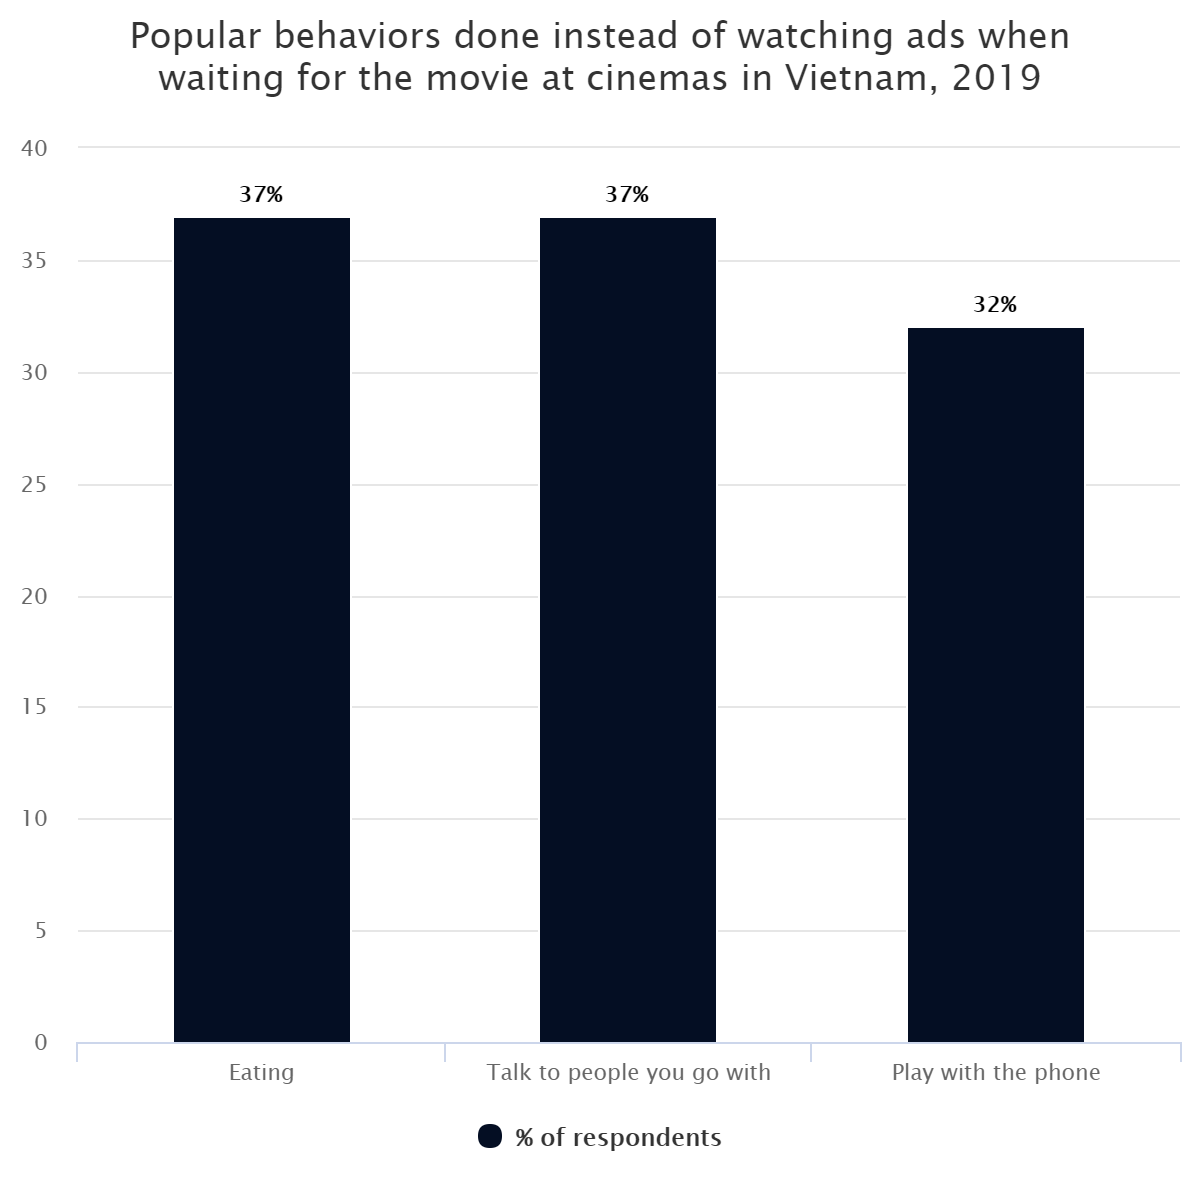 Popular behaviors done instead of watching ads when waiting for the movie at cinemas in Vietnam, 2019